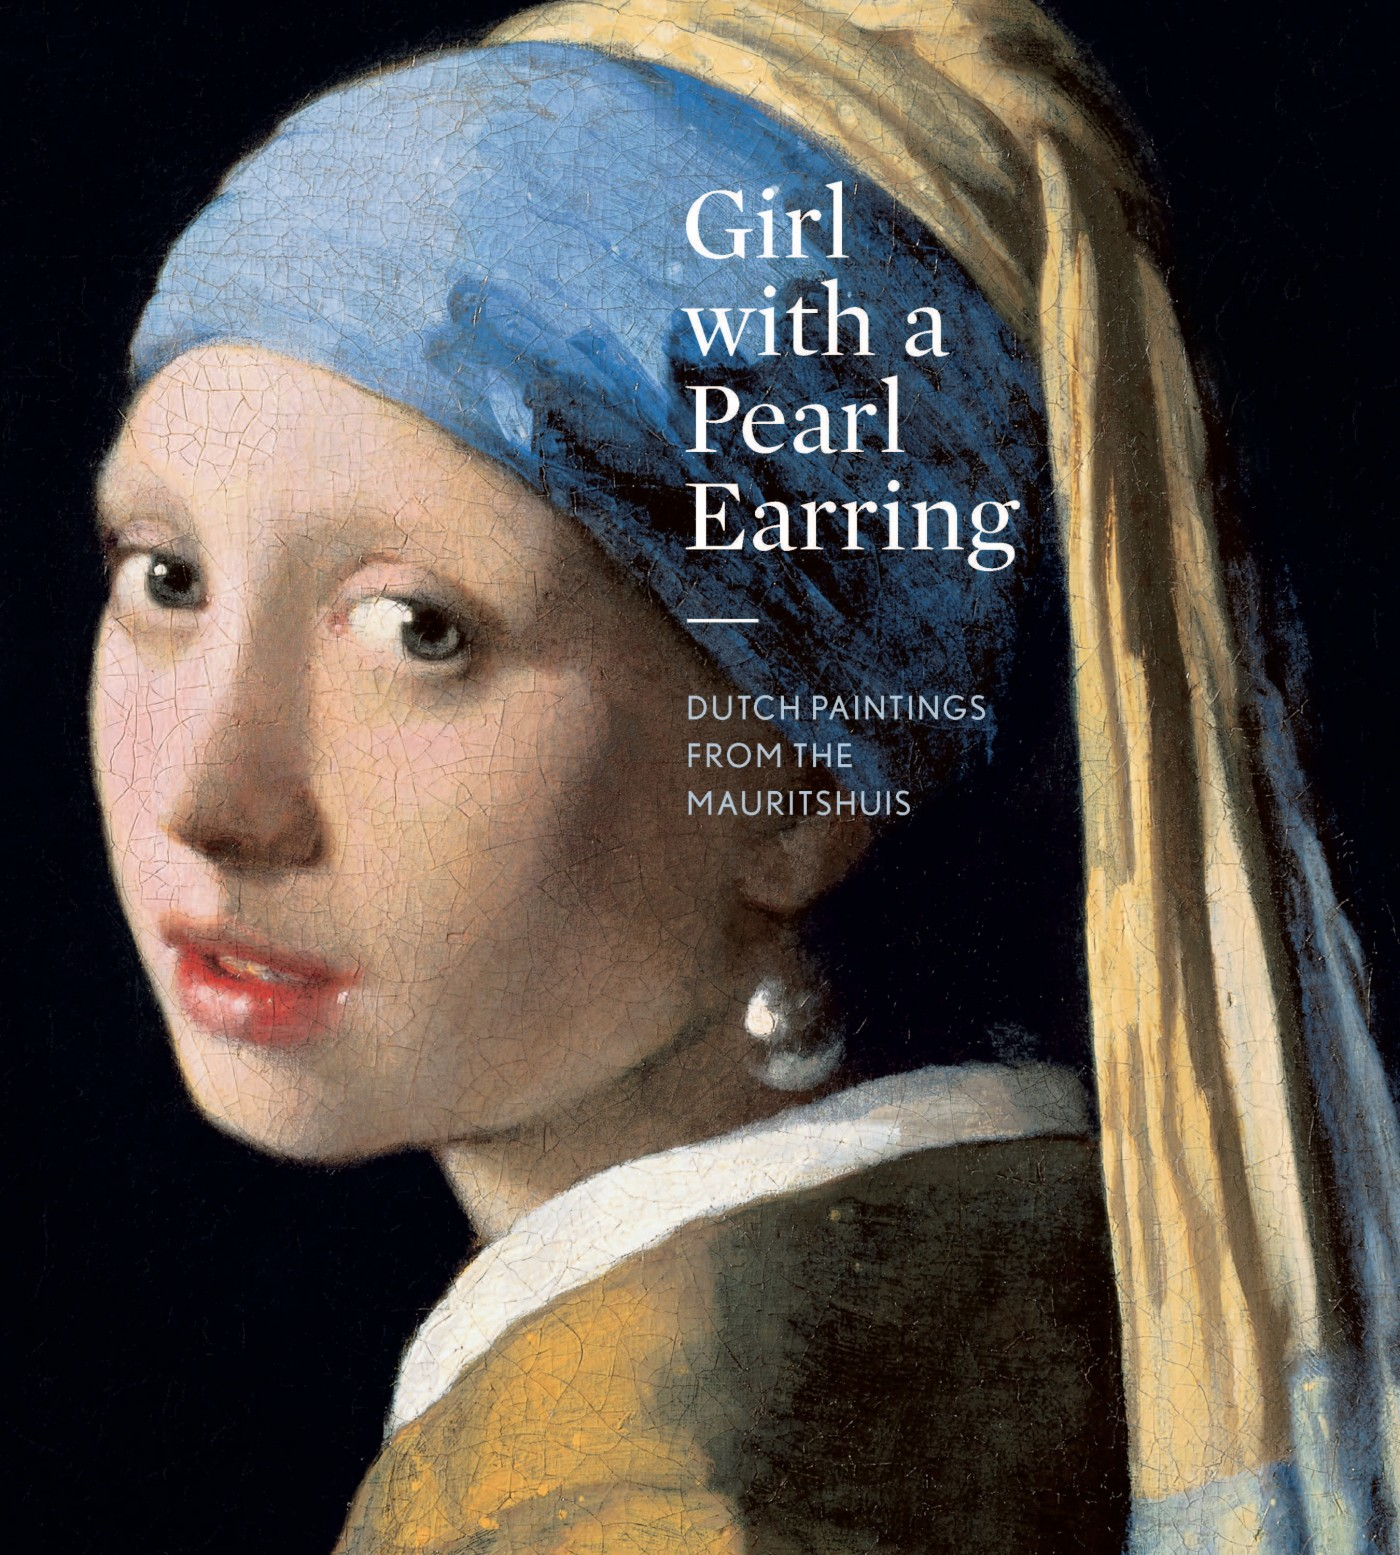 005 Girl With Pearl Earring Essay A 129424 Outstanding The Movie Film Review 1400